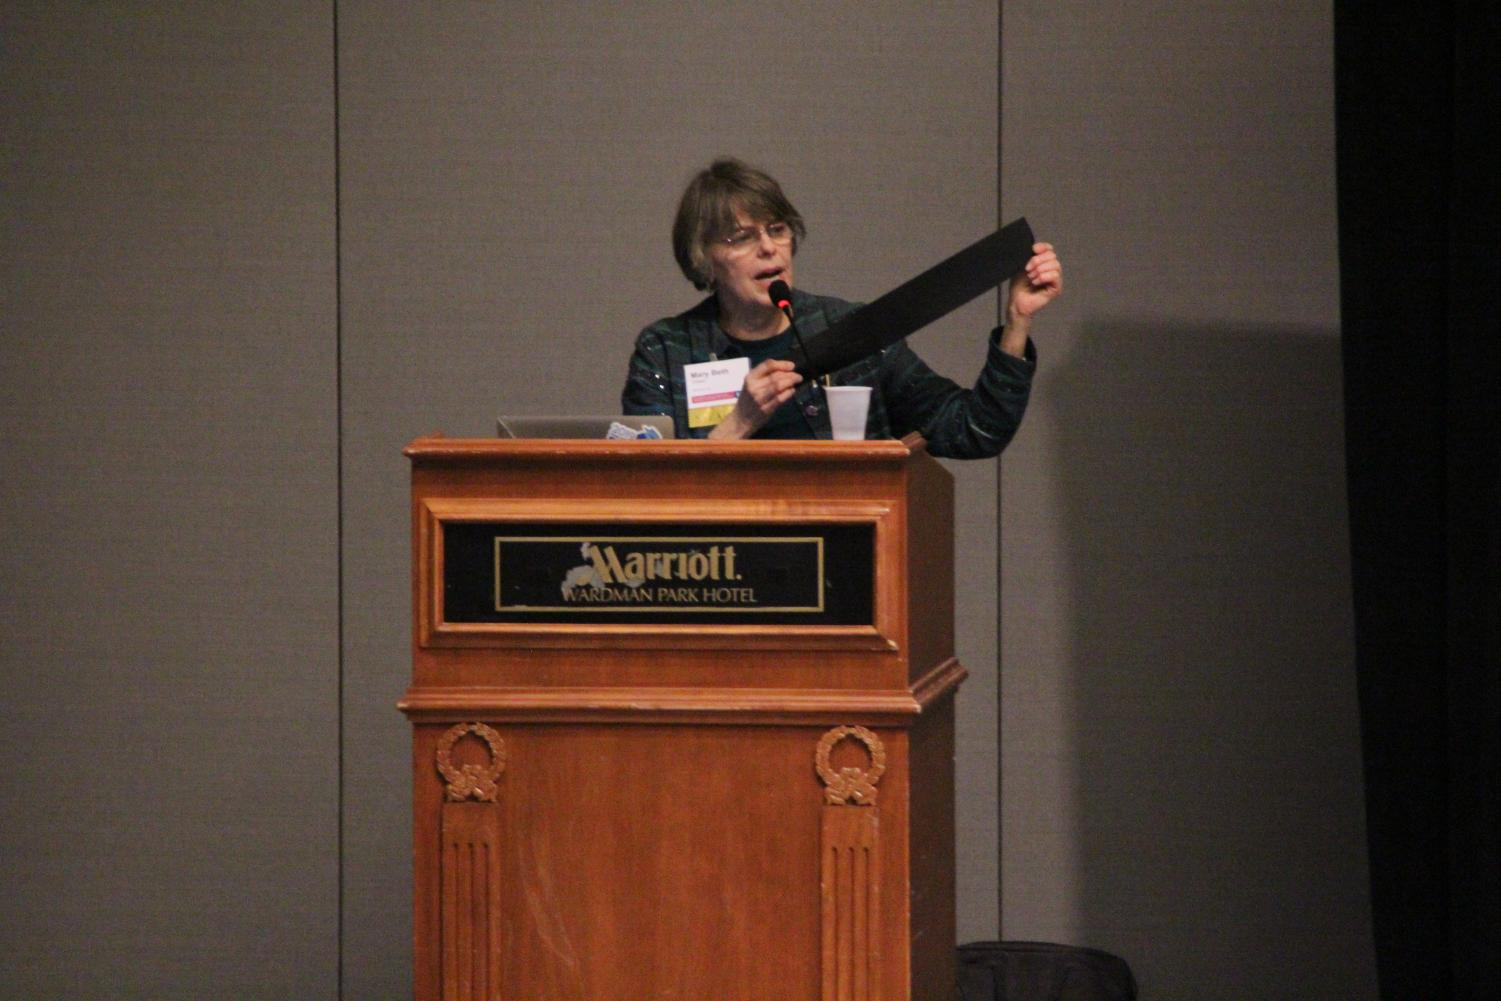 Mary Beth Tinker holds up a signed black armband to an audience of student journalists at the JEA/NSPA convention, a similar piece to the original black armbands she wore to protest the resulting casualties of American involvement in the Vietnam War.